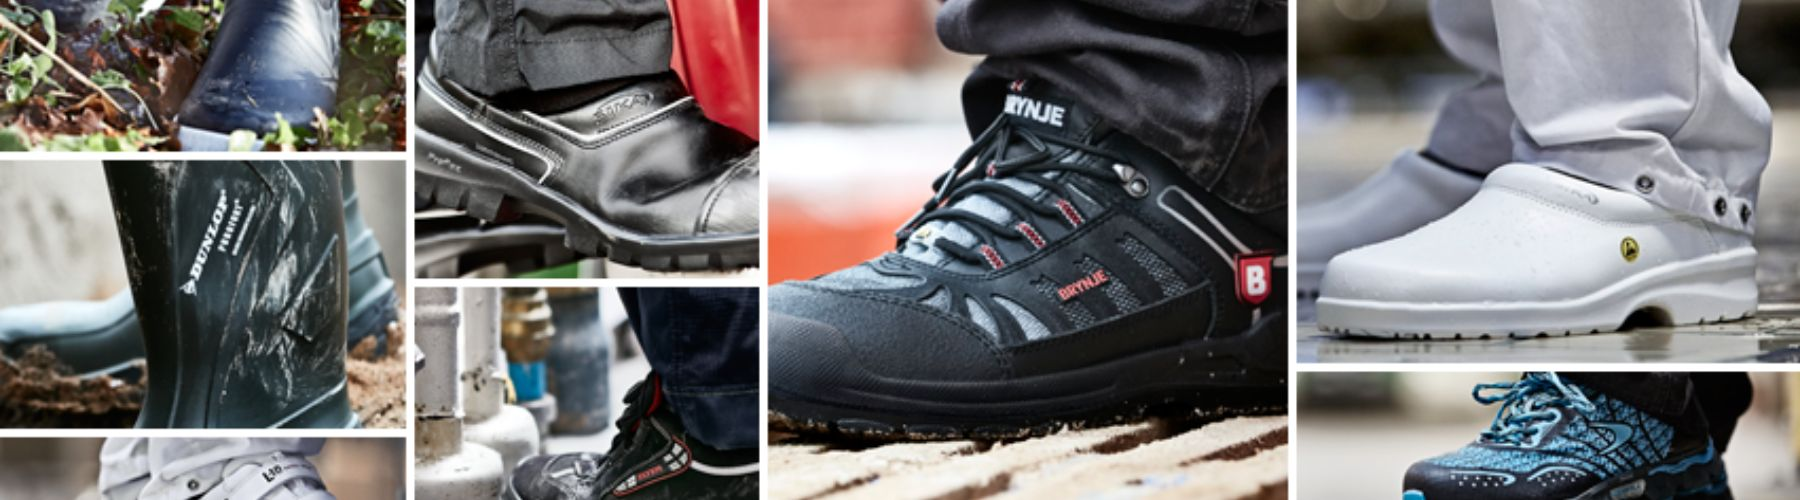 Sika Footwear Download Center cover image